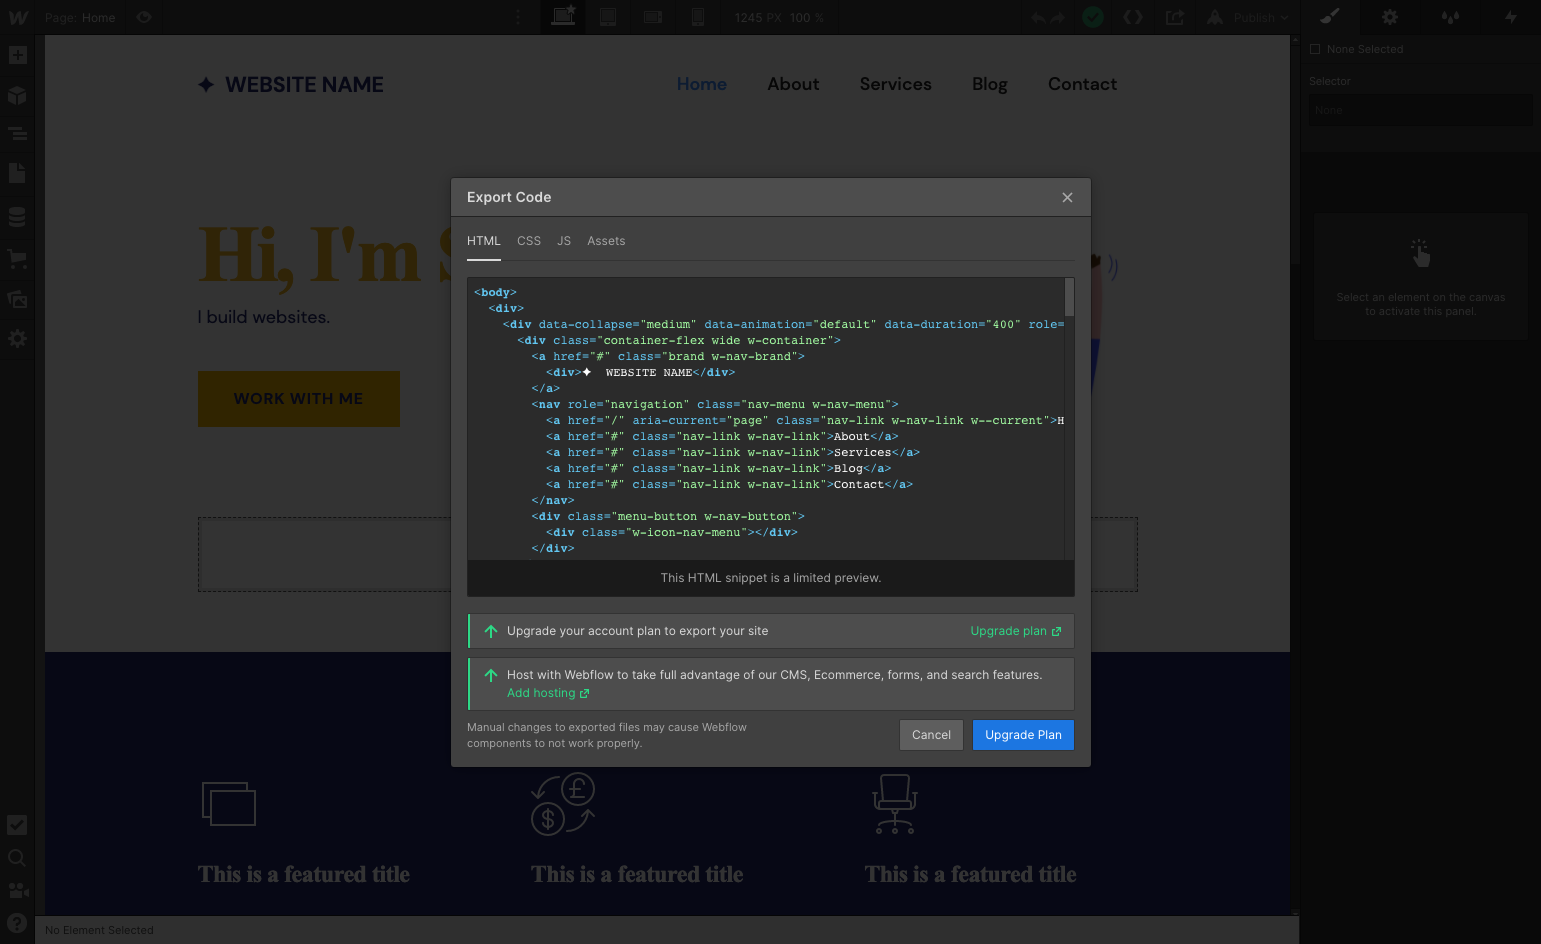 Example of HTML code that is generated by Webflow